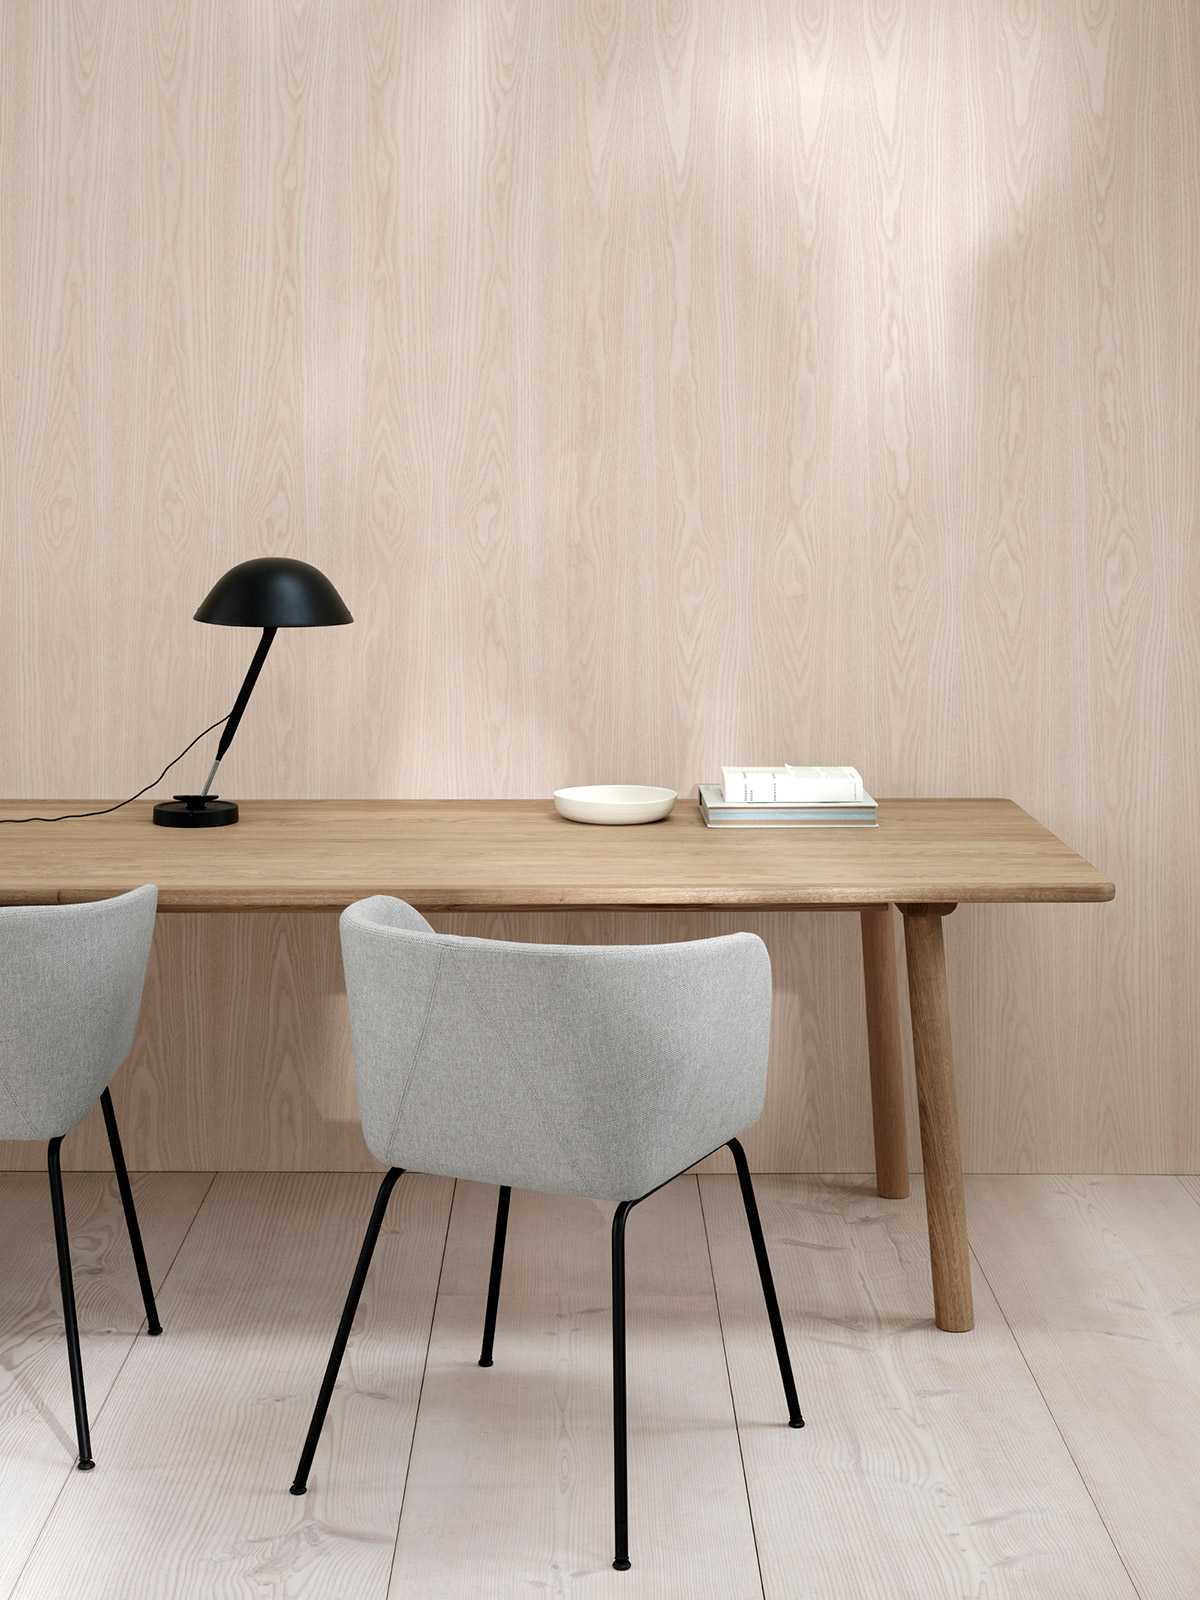 Verve 4 leg chair and Taro table in smoked oak by Fredericia